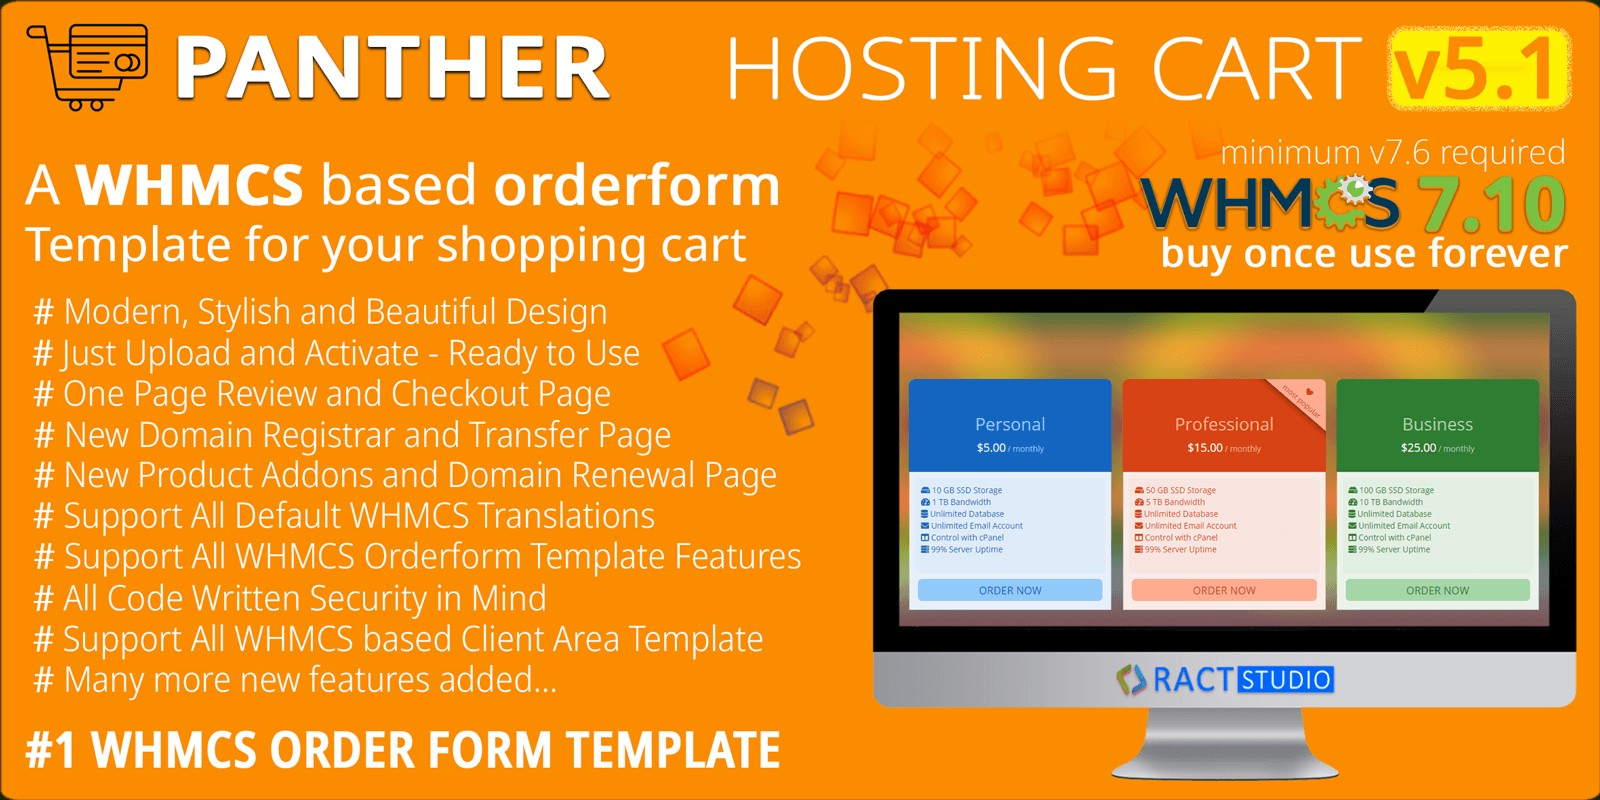 Panther Hosting Cart - WHMCS Order Form Template